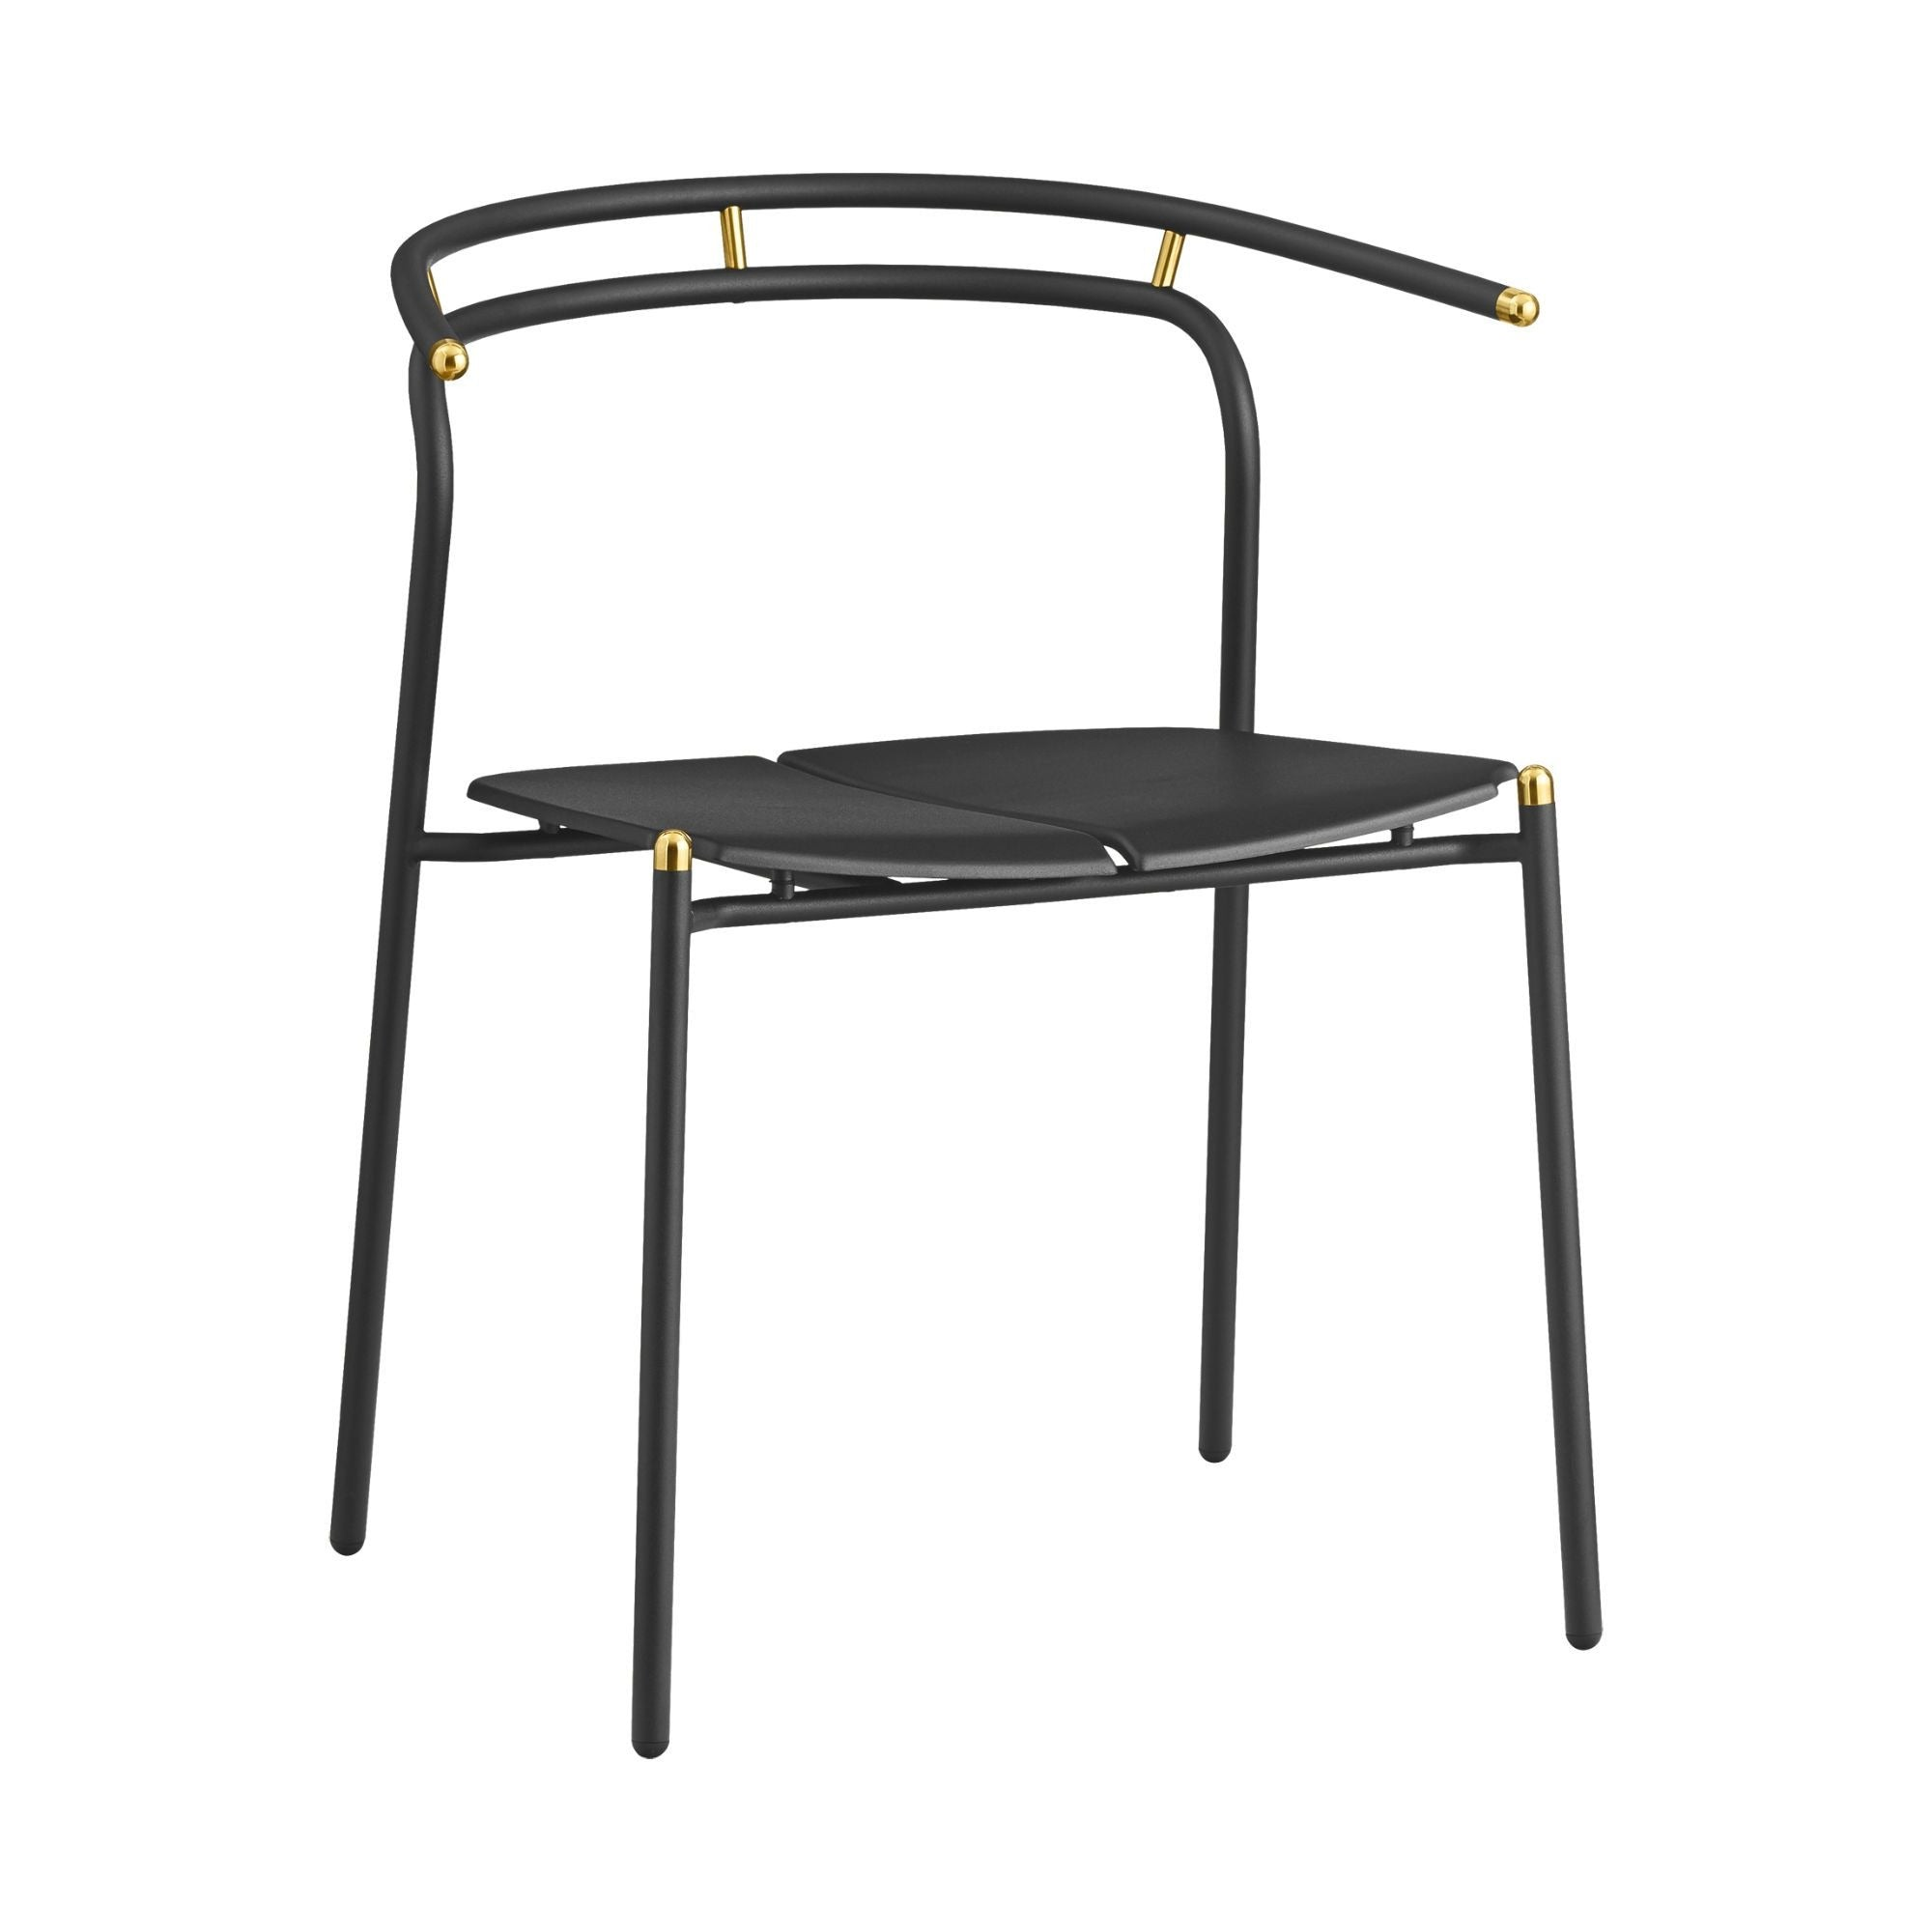 AYTM NOVO dining chair , black - gold